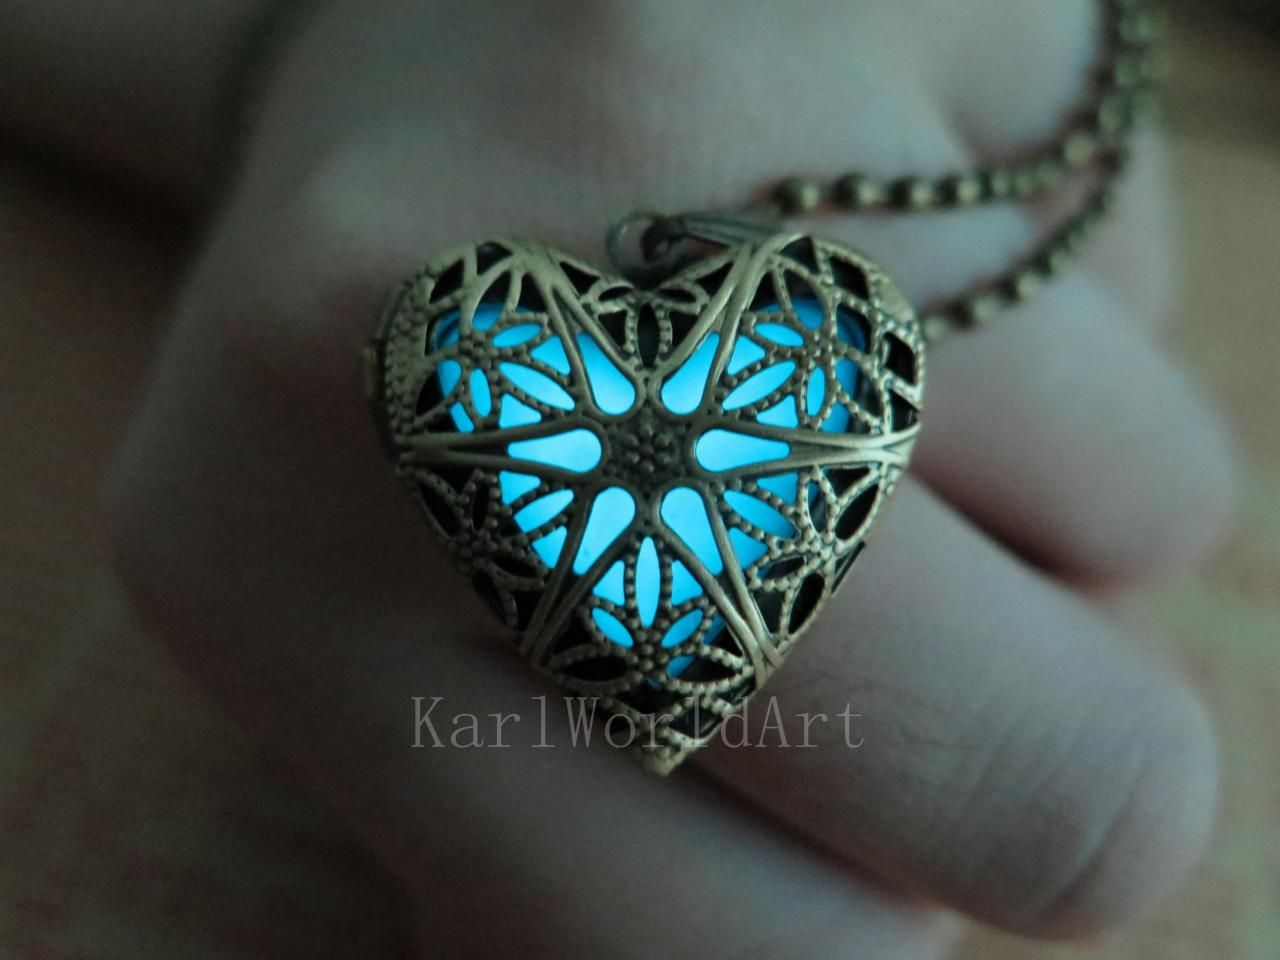 dark pendant in atlantis kida zstore co glow the image products product necklace